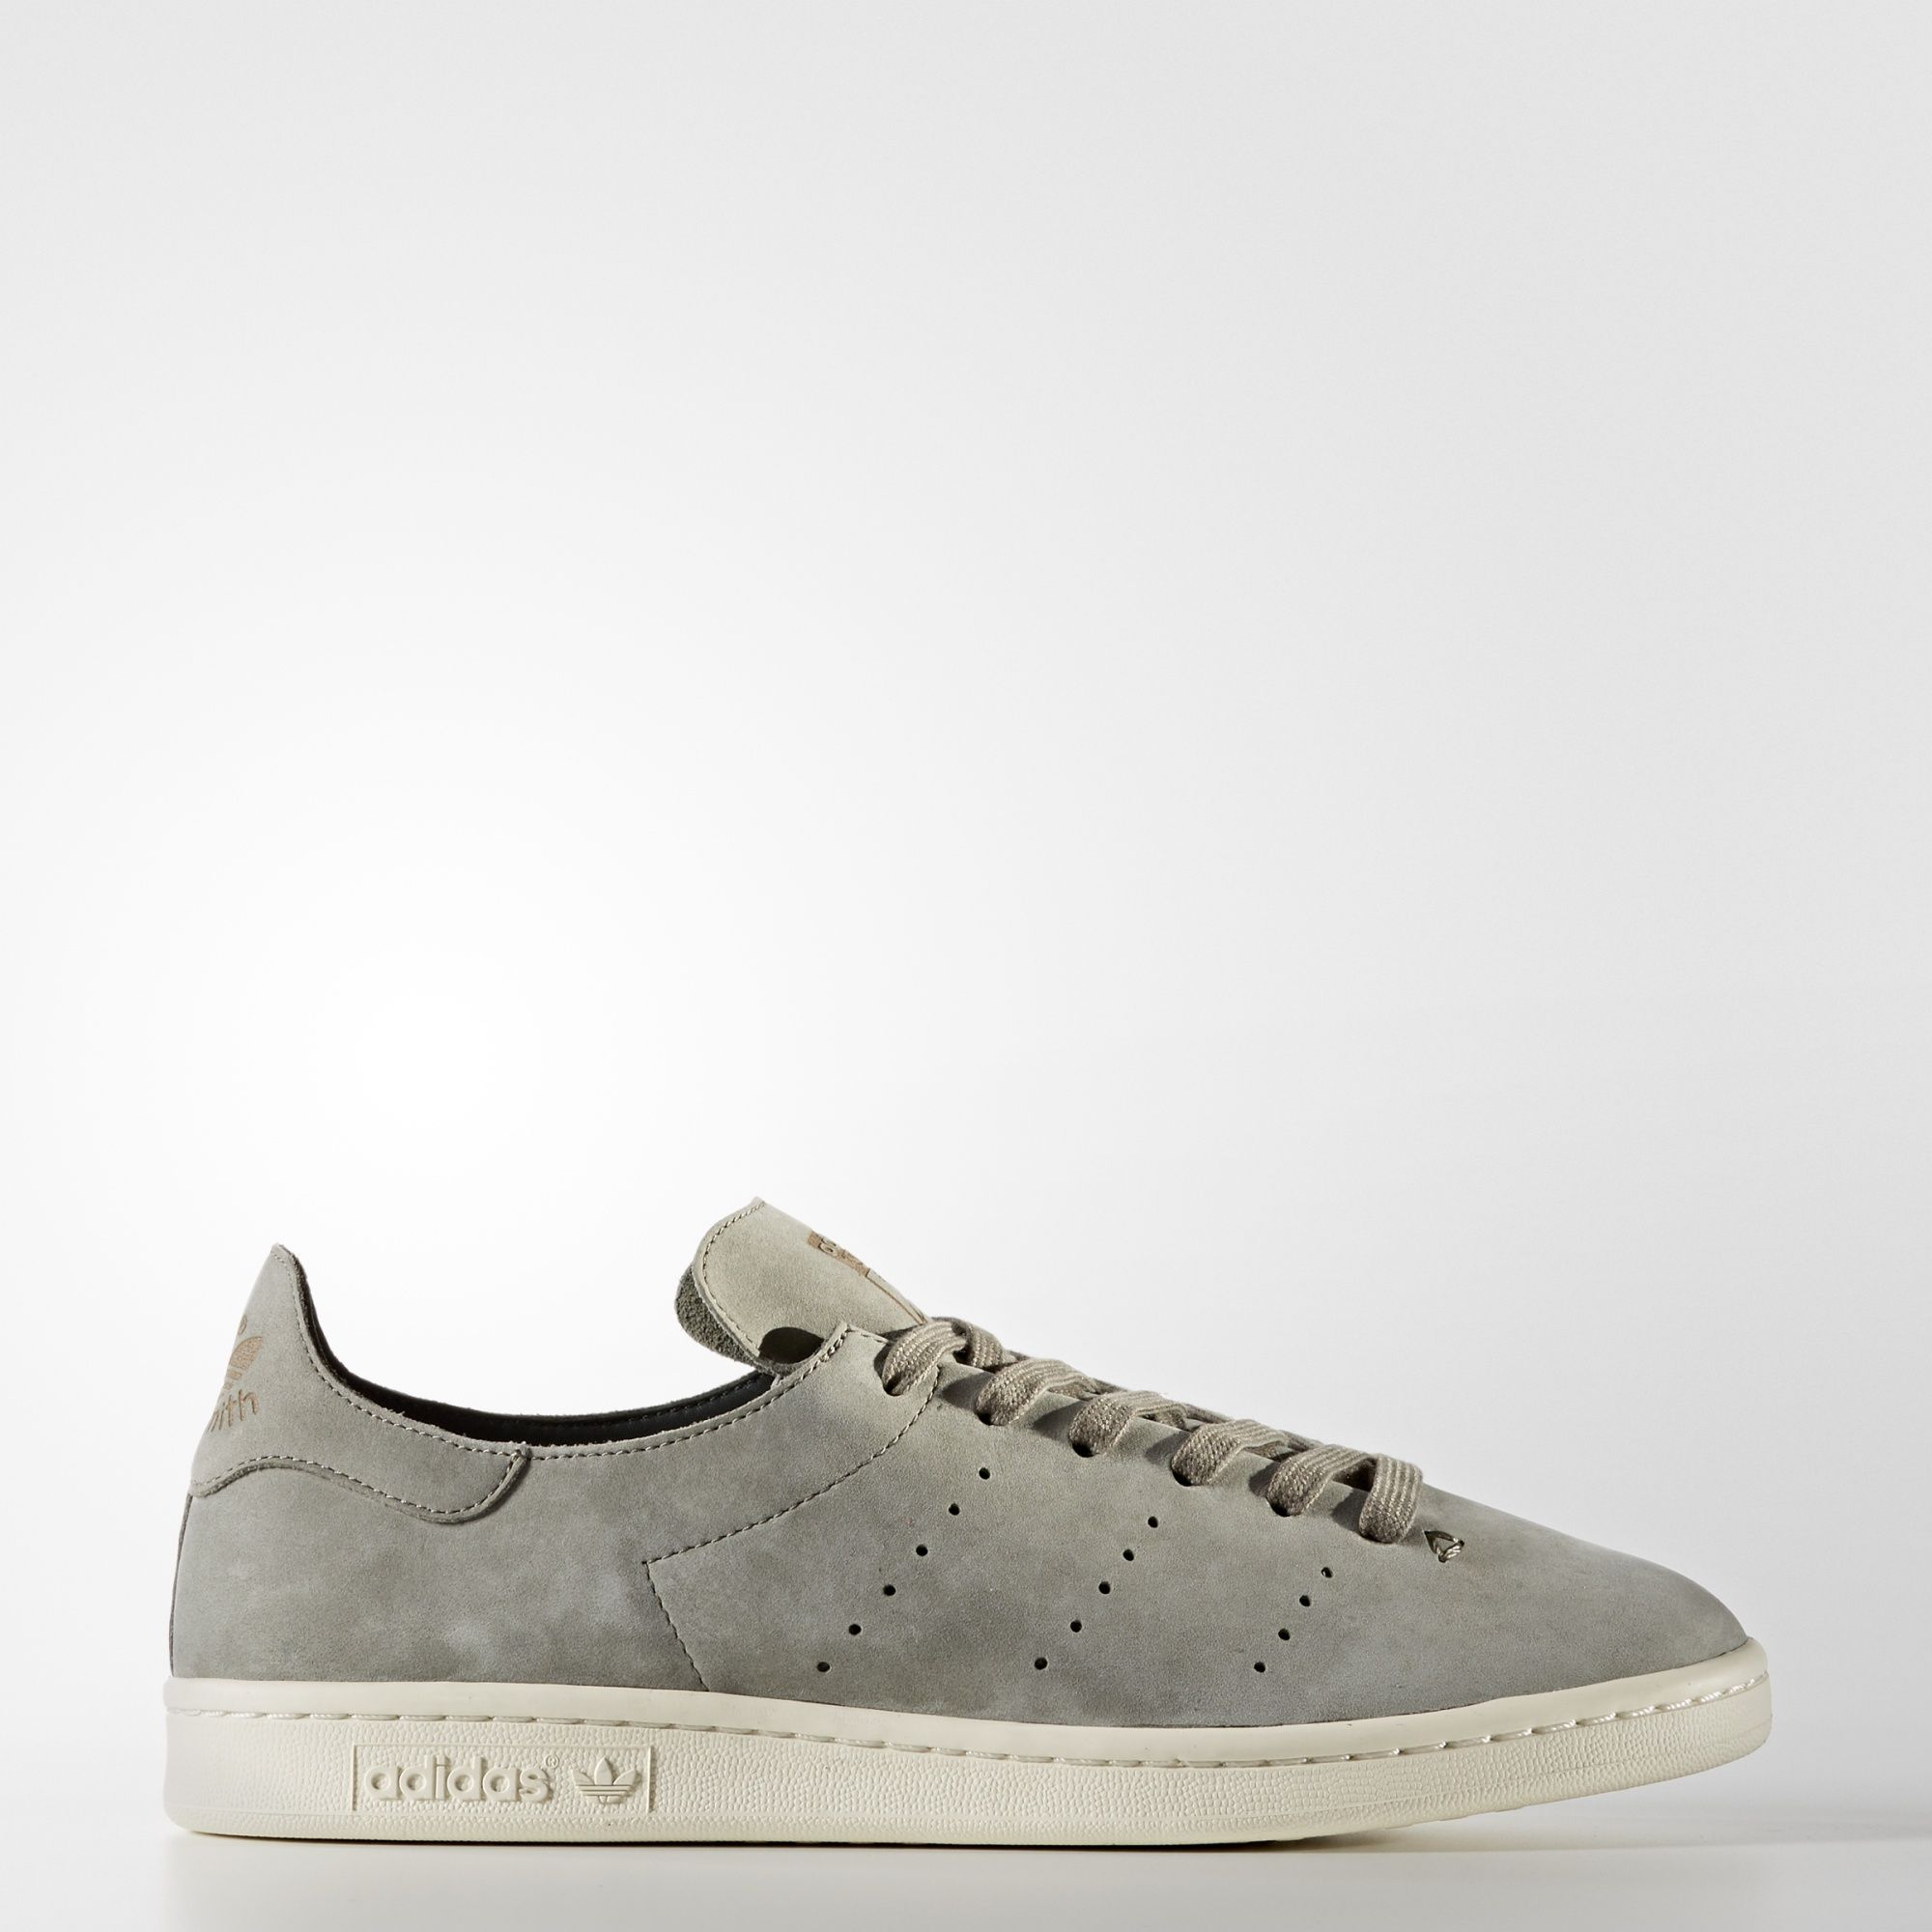 The clean look of the Stan Smith is redefined with a minimalist single-piece nubuck upper. These men's streamlined shoes capture the authentic look of the '70s original with perforated 3-Stripes and a low-profile rubber cupsole.